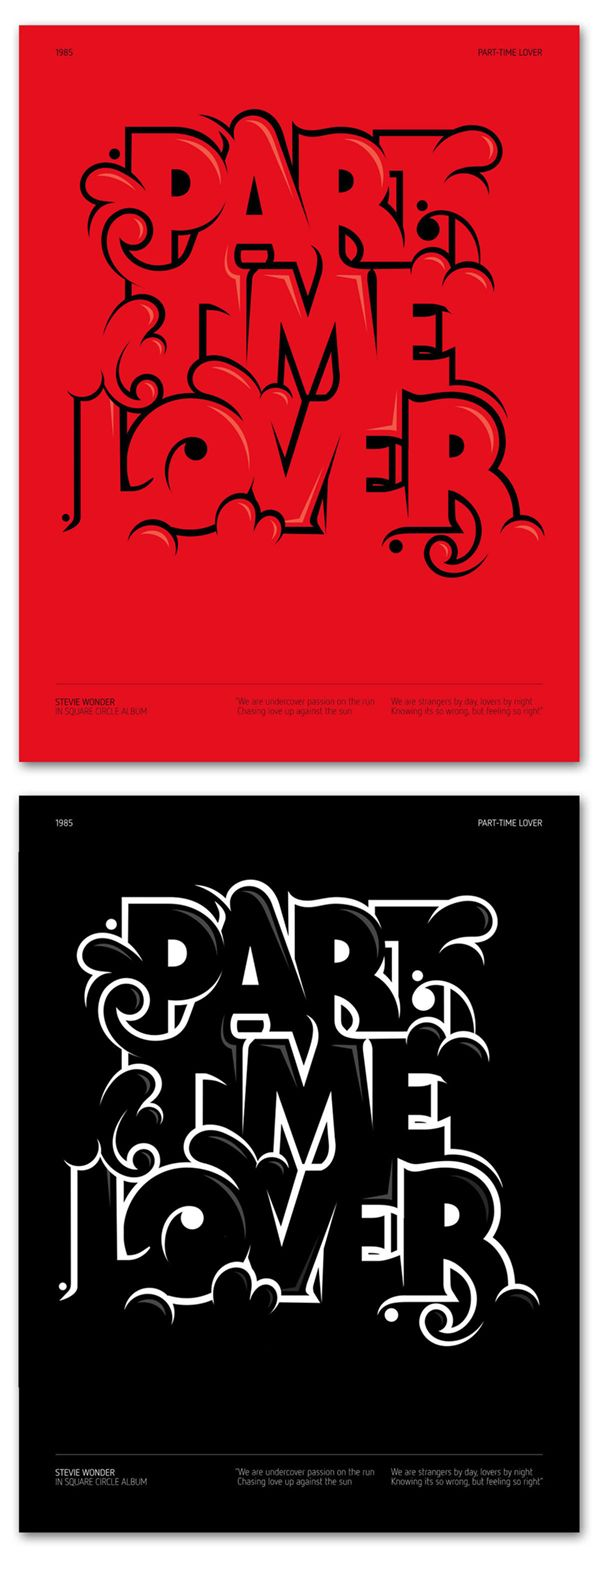 PART TIME LOVER, Andre Beato, type/illustration Graphic design inspiration